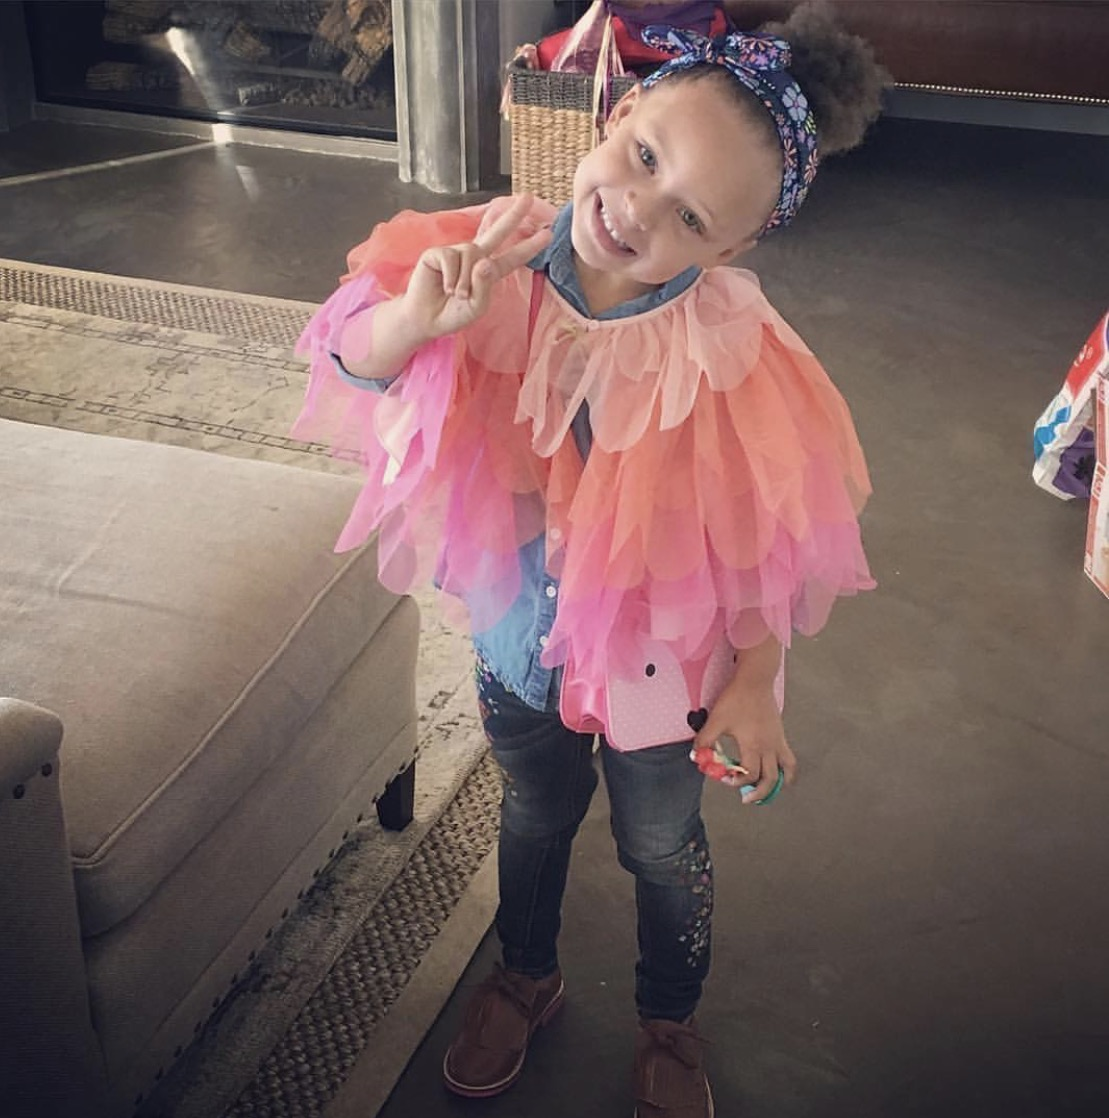 Riley Curry, daughter of NBA star Stephen Curry, wore her brogues on her 4th birthday.